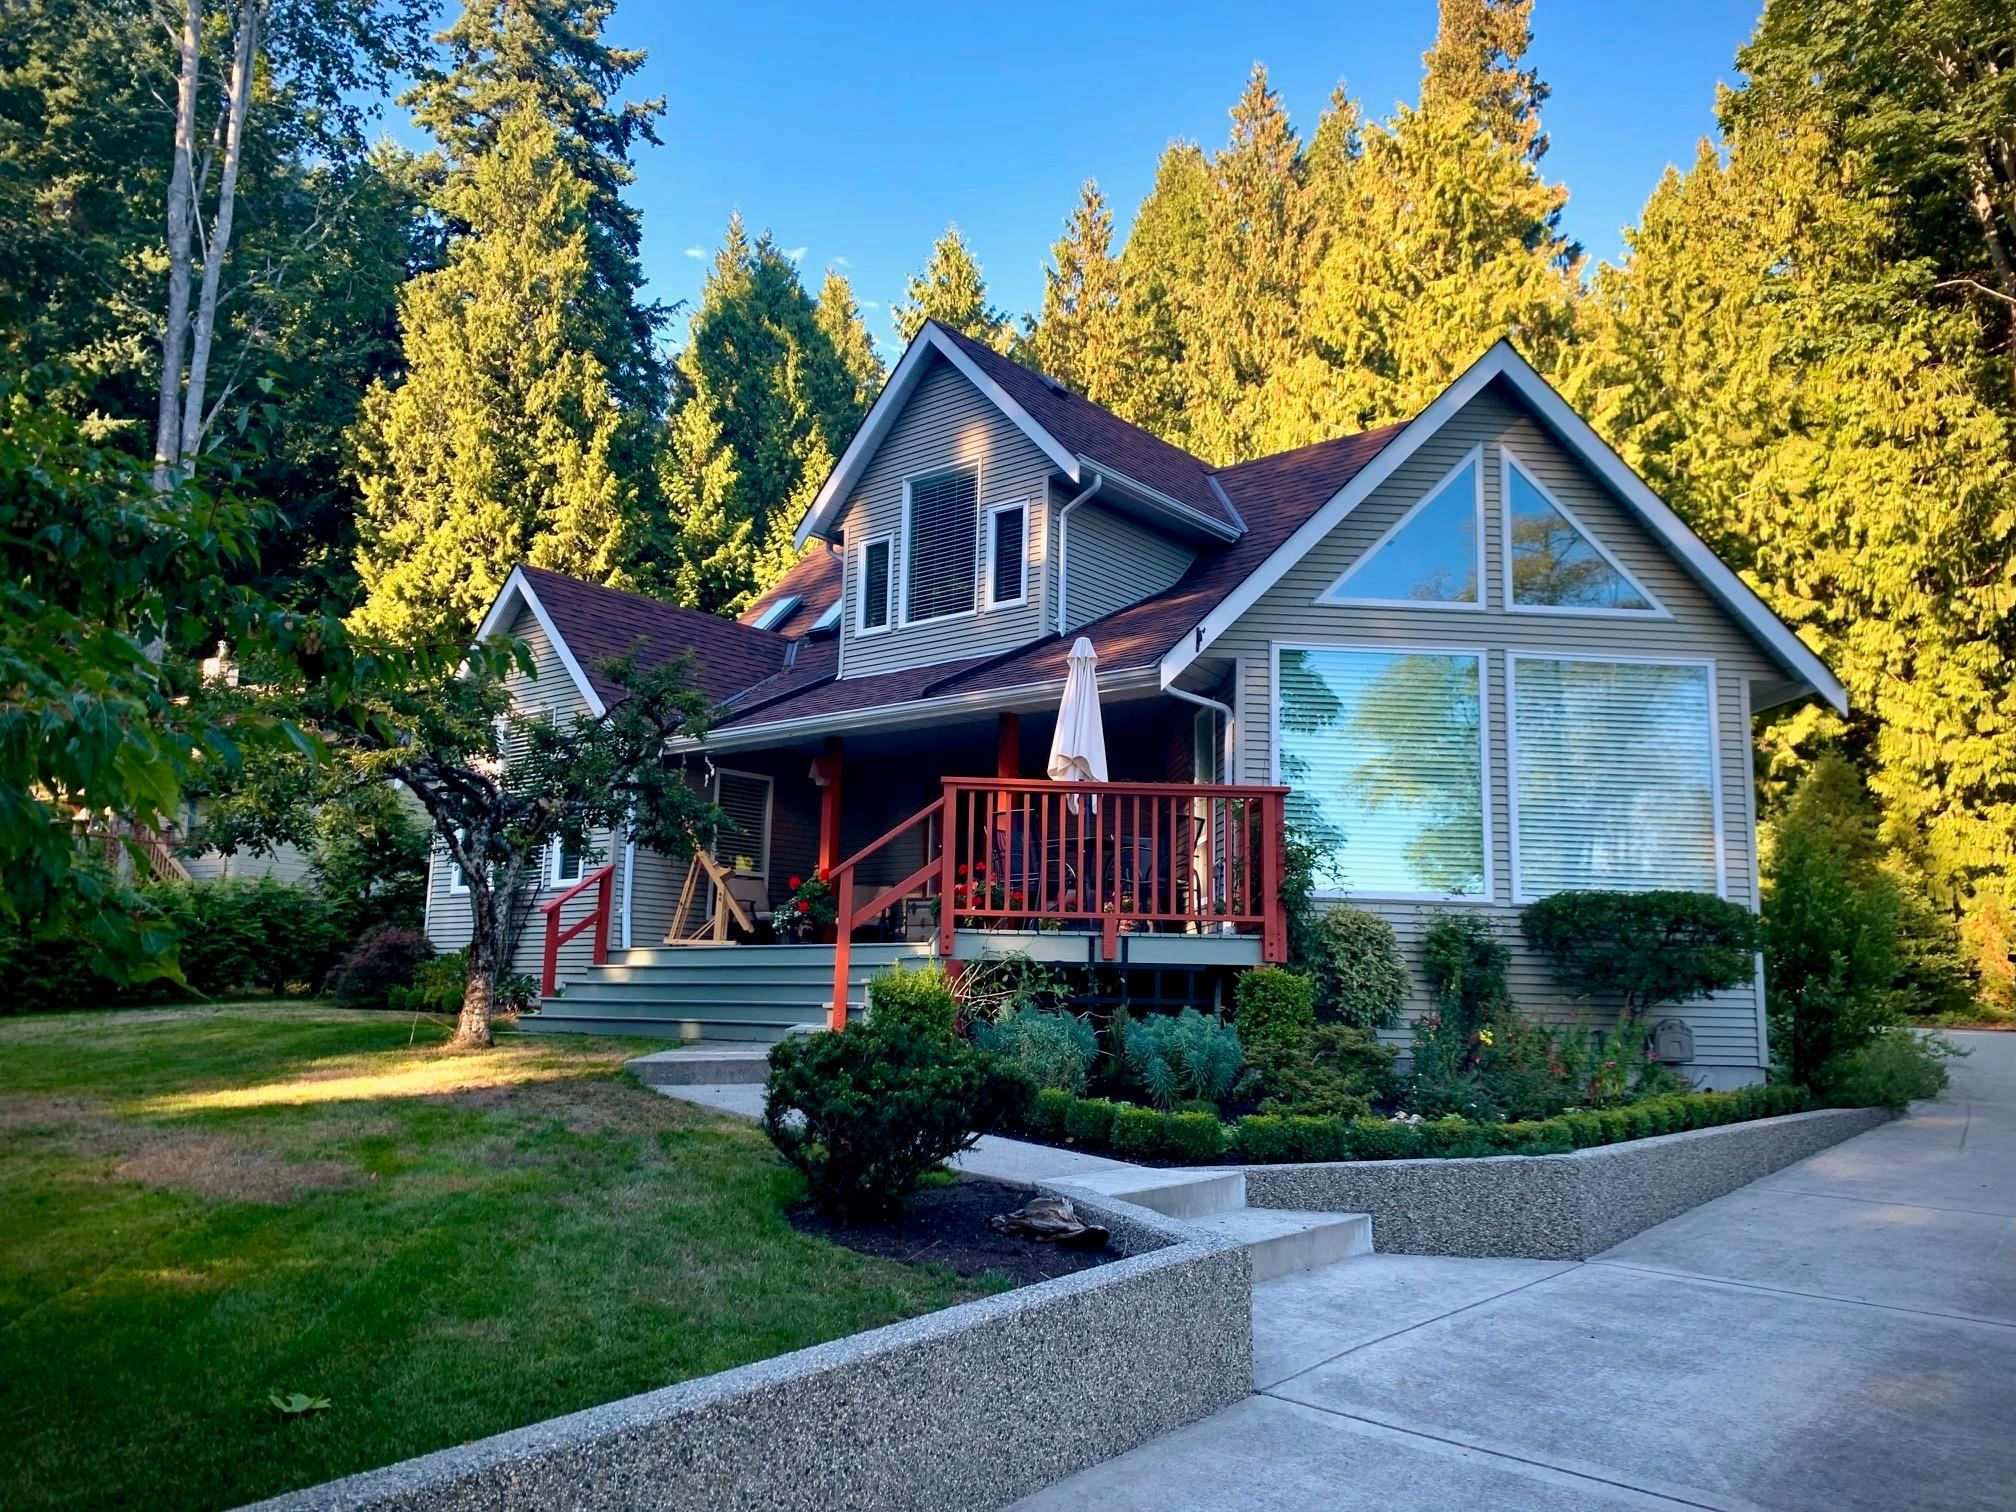 Main Photo: 954 FEENEY Road in Gibsons: Gibsons & Area House for sale (Sunshine Coast)  : MLS®# R2624754